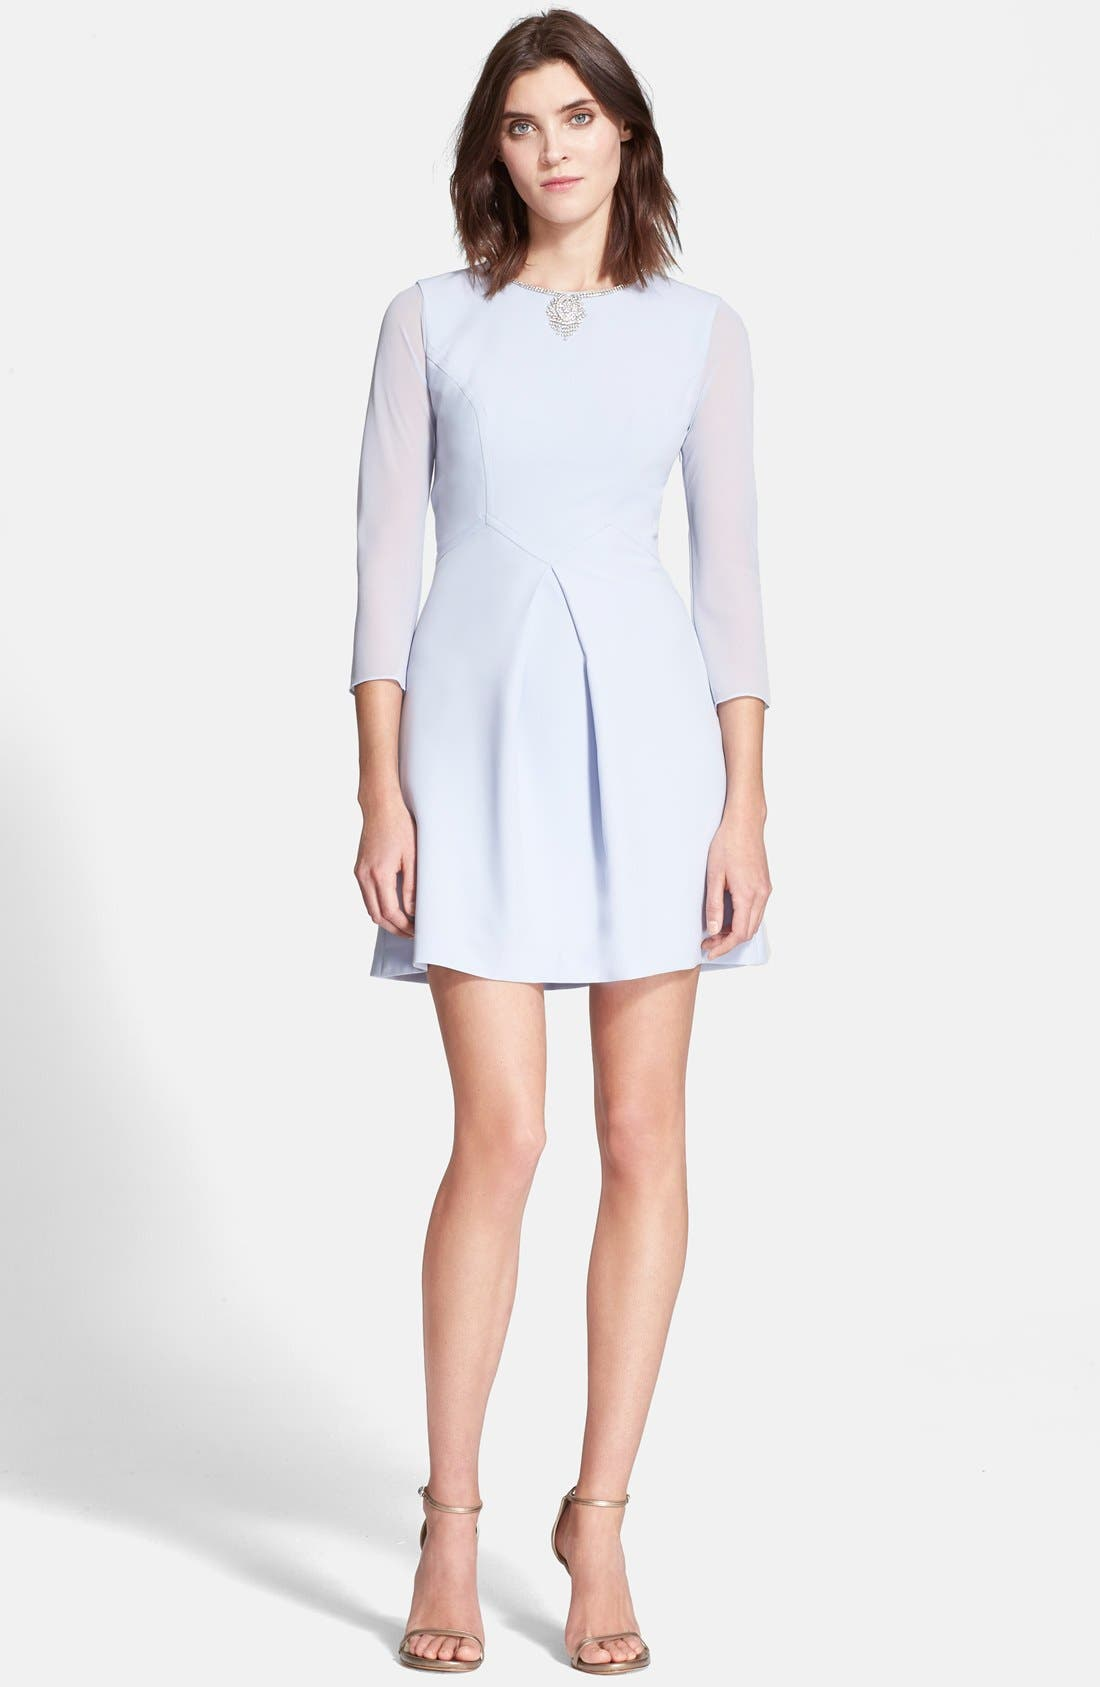 Main Image - Ted Baker London 'Haswell' Embellished Three Quarter Sleeve A-Line Dress